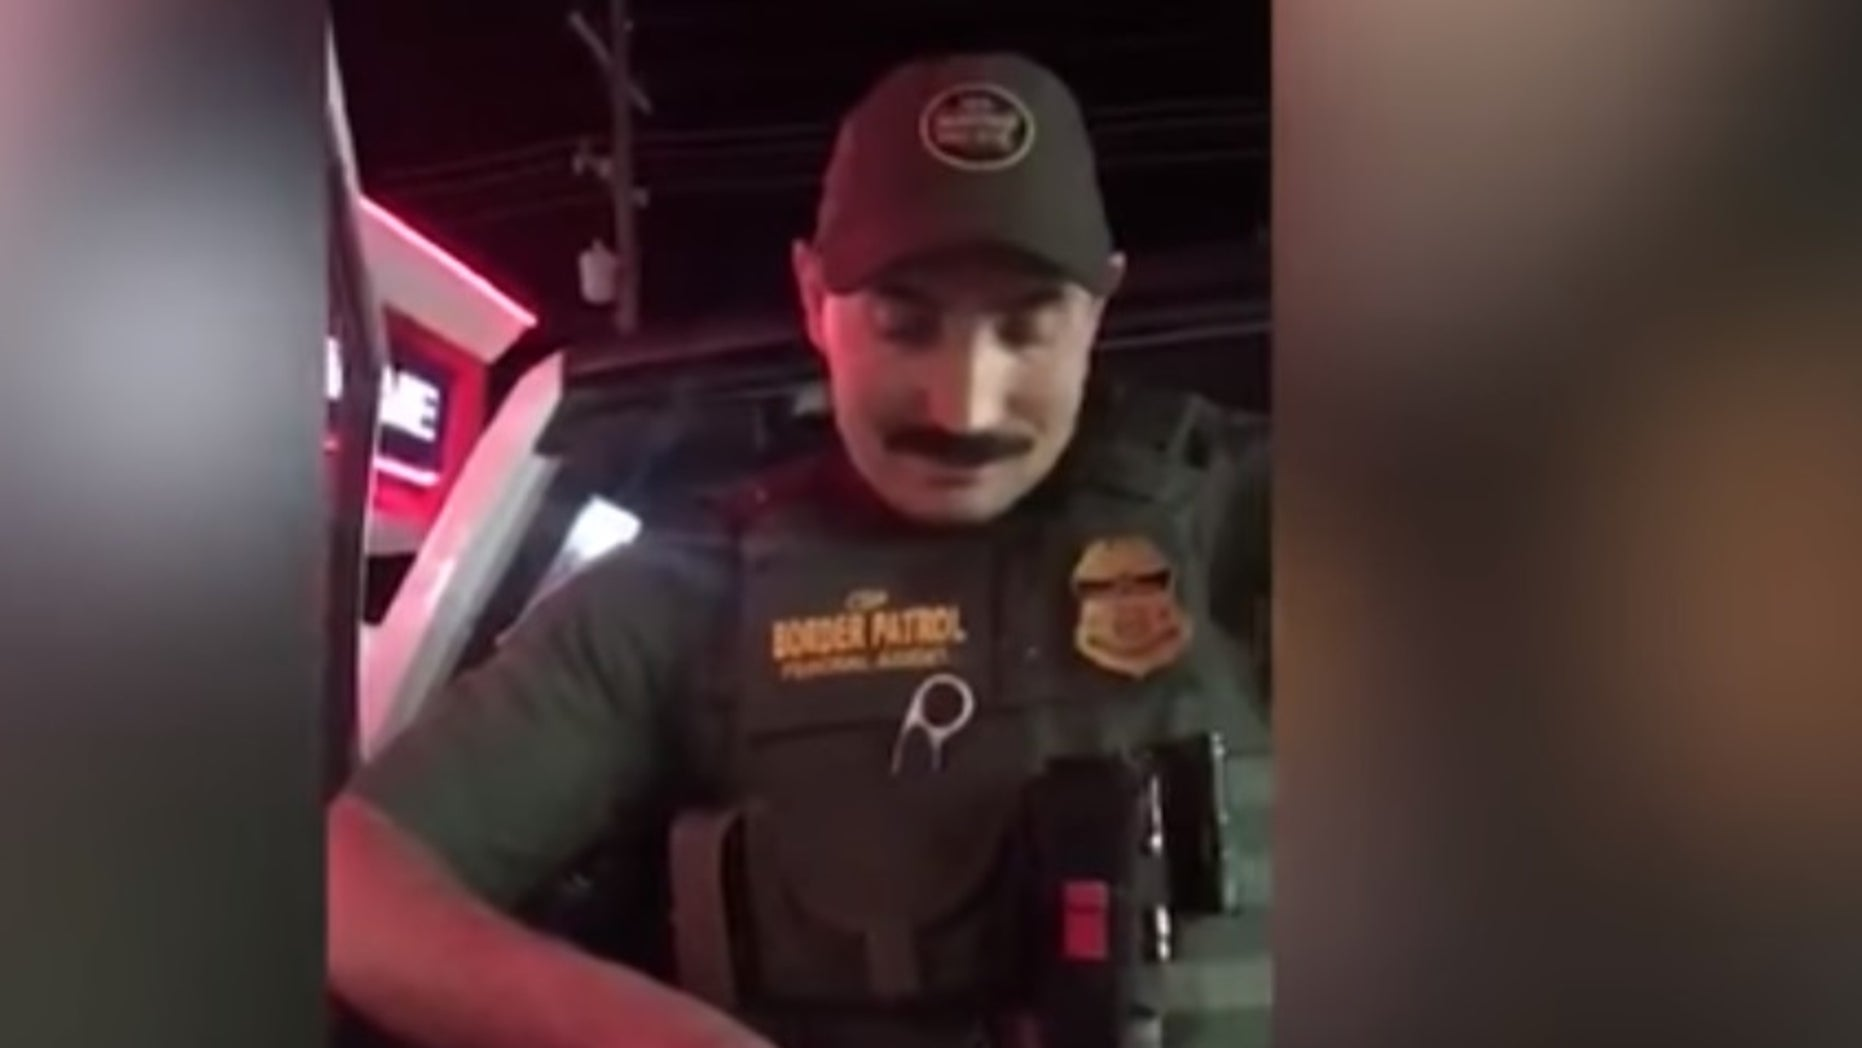 A Border Patrol agent in Montana appeared to admit on video that he wanted to question two women simply because they were speaking Spanish in a predominately English-speaking area.